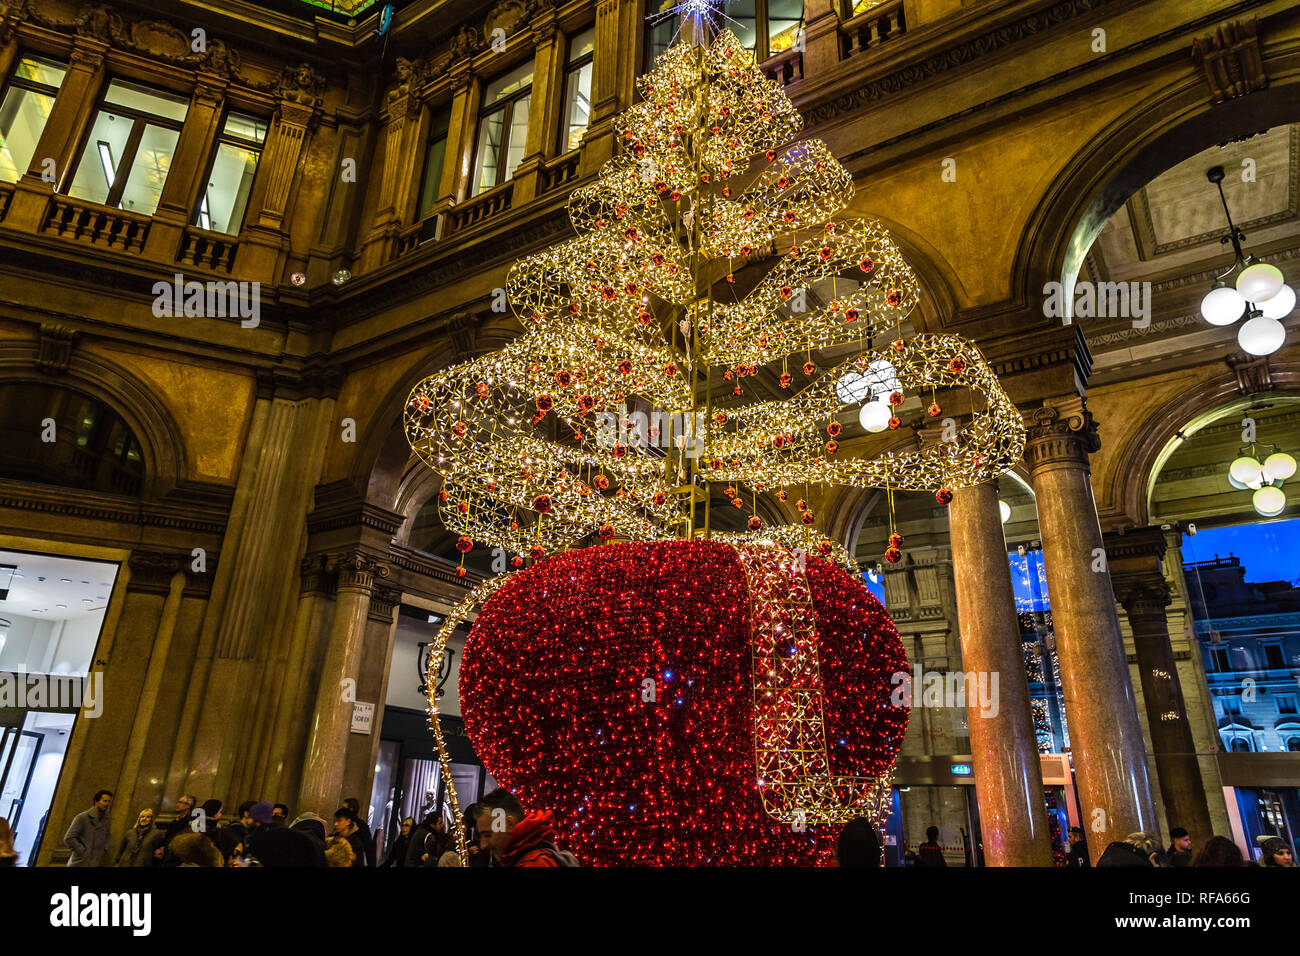 Christmas In Italy 2019.Rome Italy January 4 2019 Christmas Lights Are